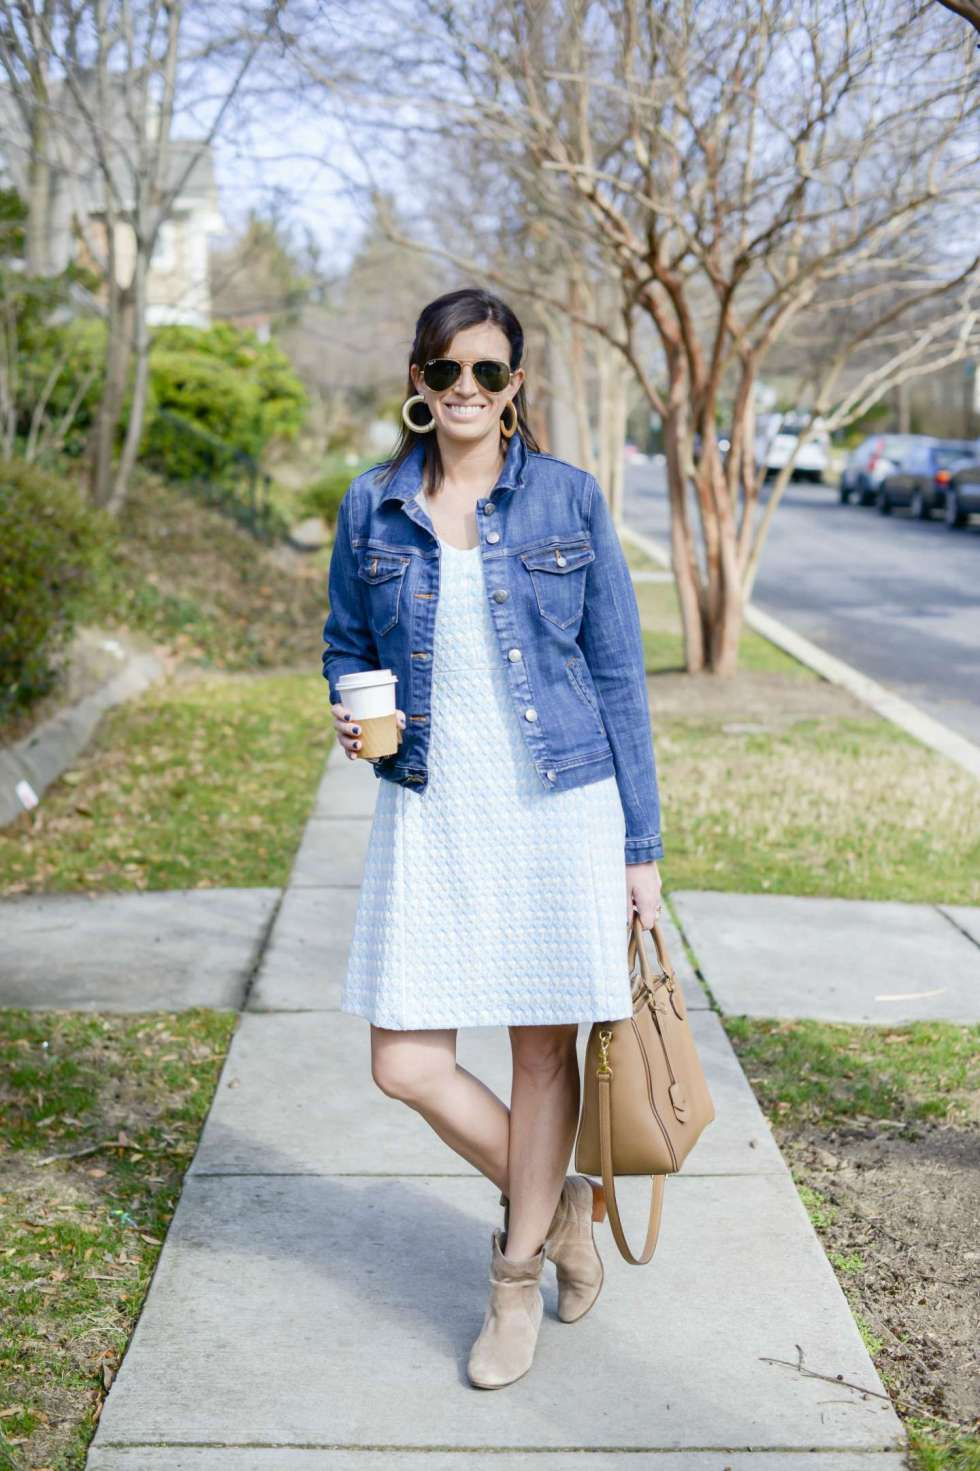 Friday Favorites: Outfits from My Girls' Roadtrip - I'm Fixin' To - @mbg0112